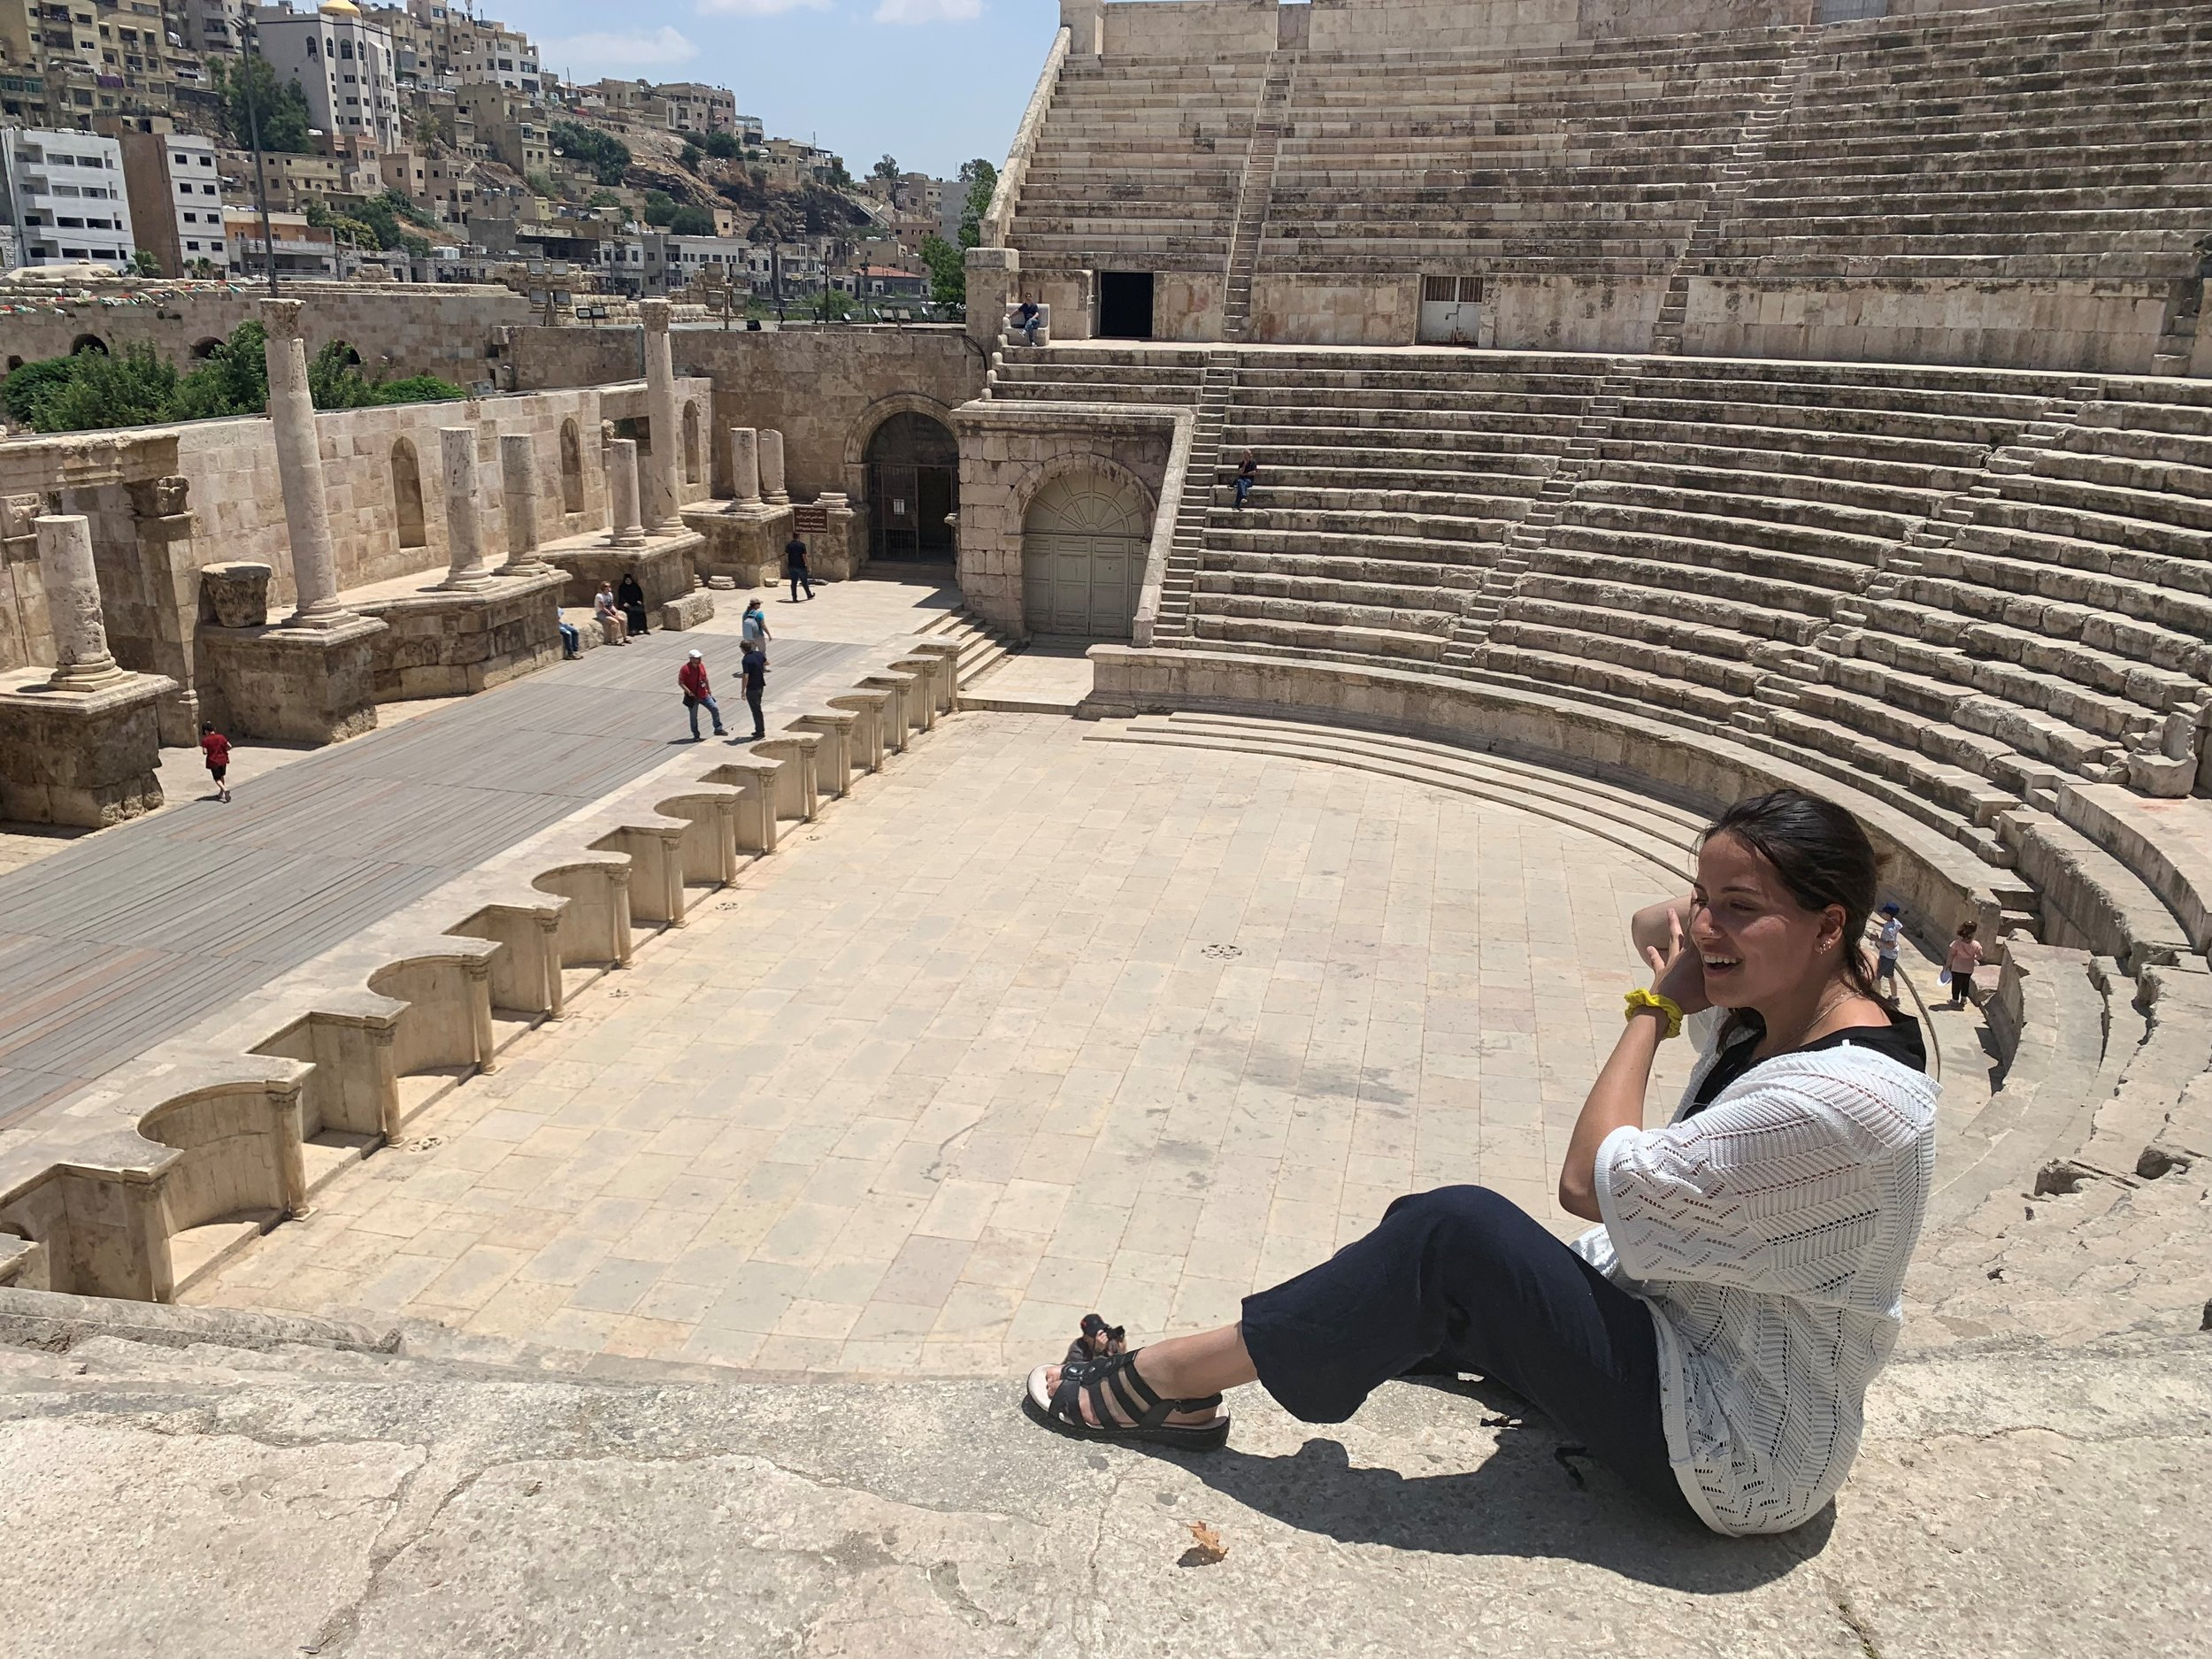 Was really feeling part of my Italian roots here in Amman! The amphitheater was HUGE. I honestly almost wiped out on my way down the steps – Proceed. With. CAUTION! Photo credit: Russo, 2019